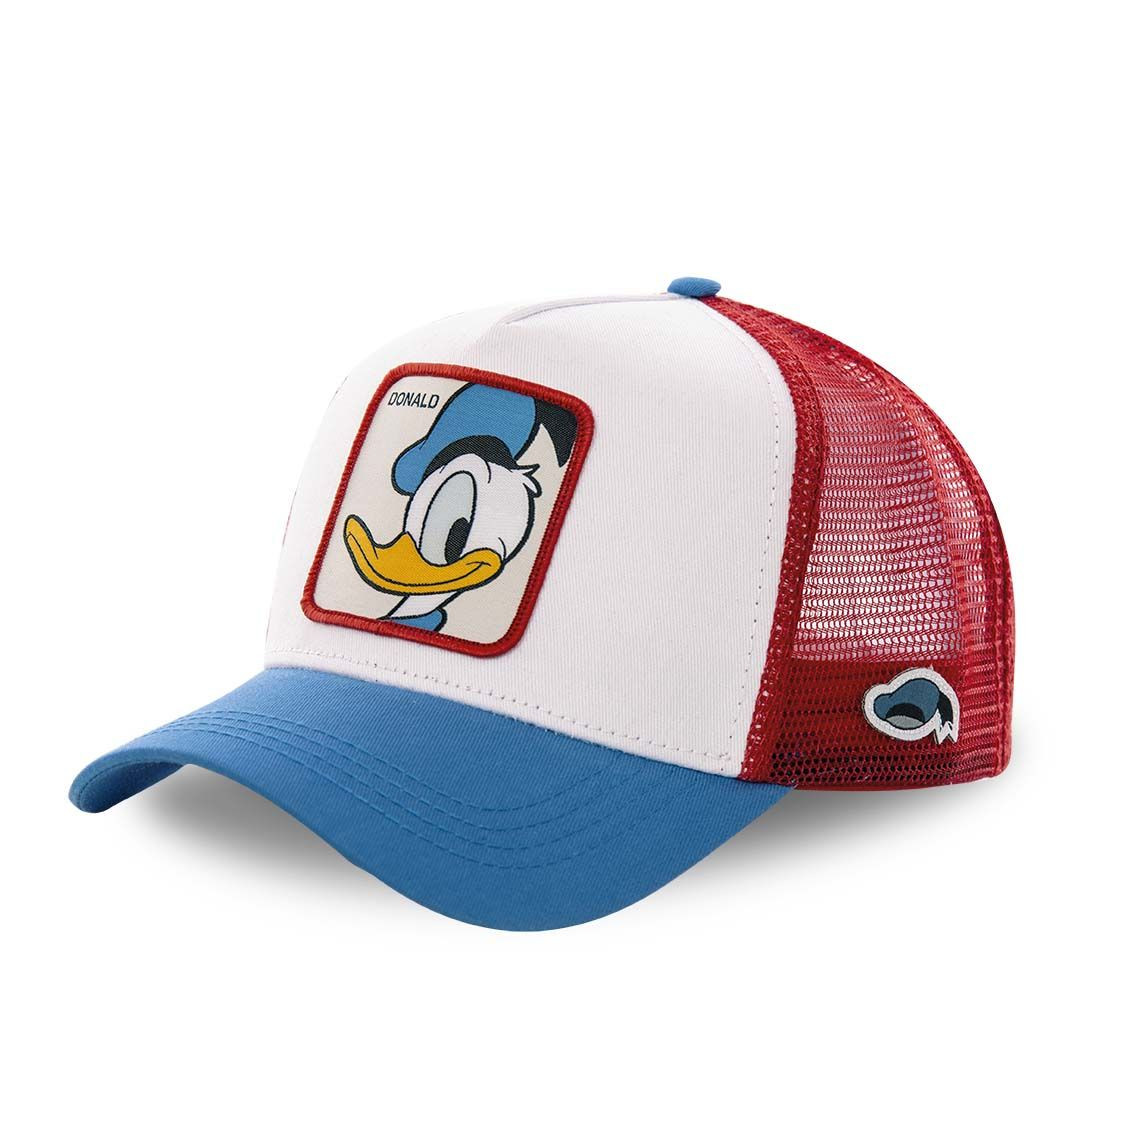 Casquette capslab disney donald blanc filet rouge (photo)